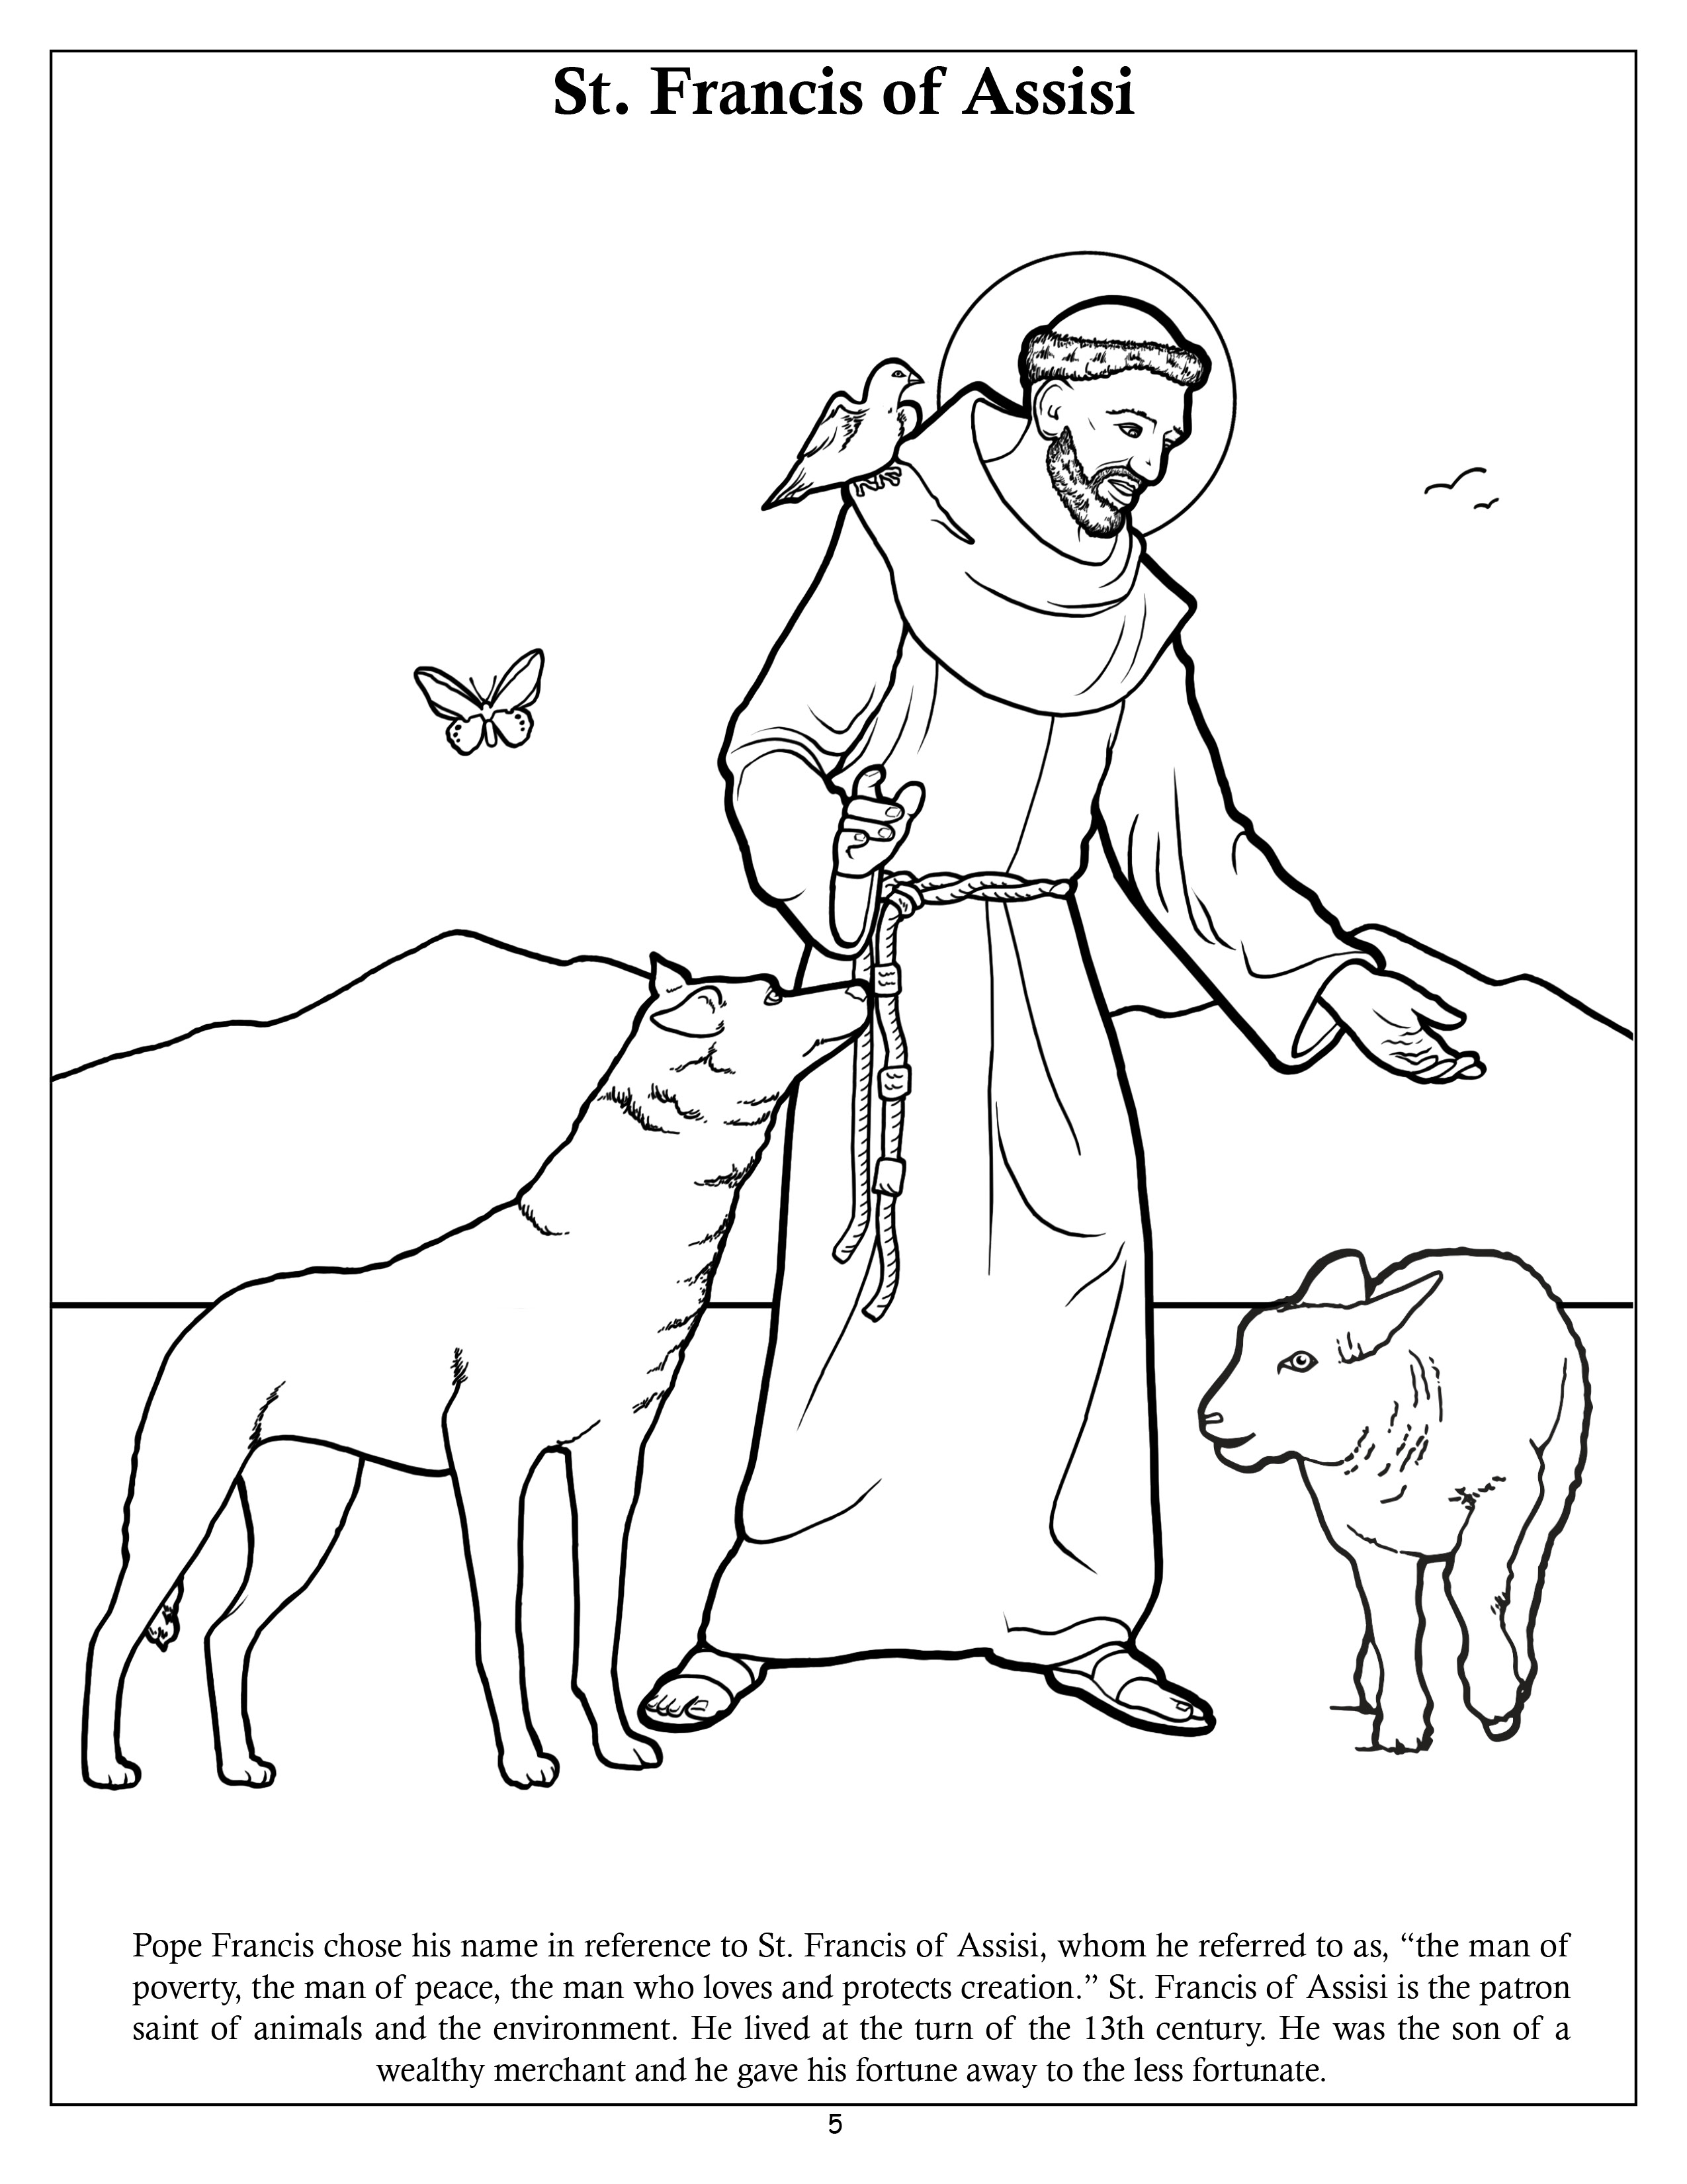 The Pope Francis Coloring And Activity Book